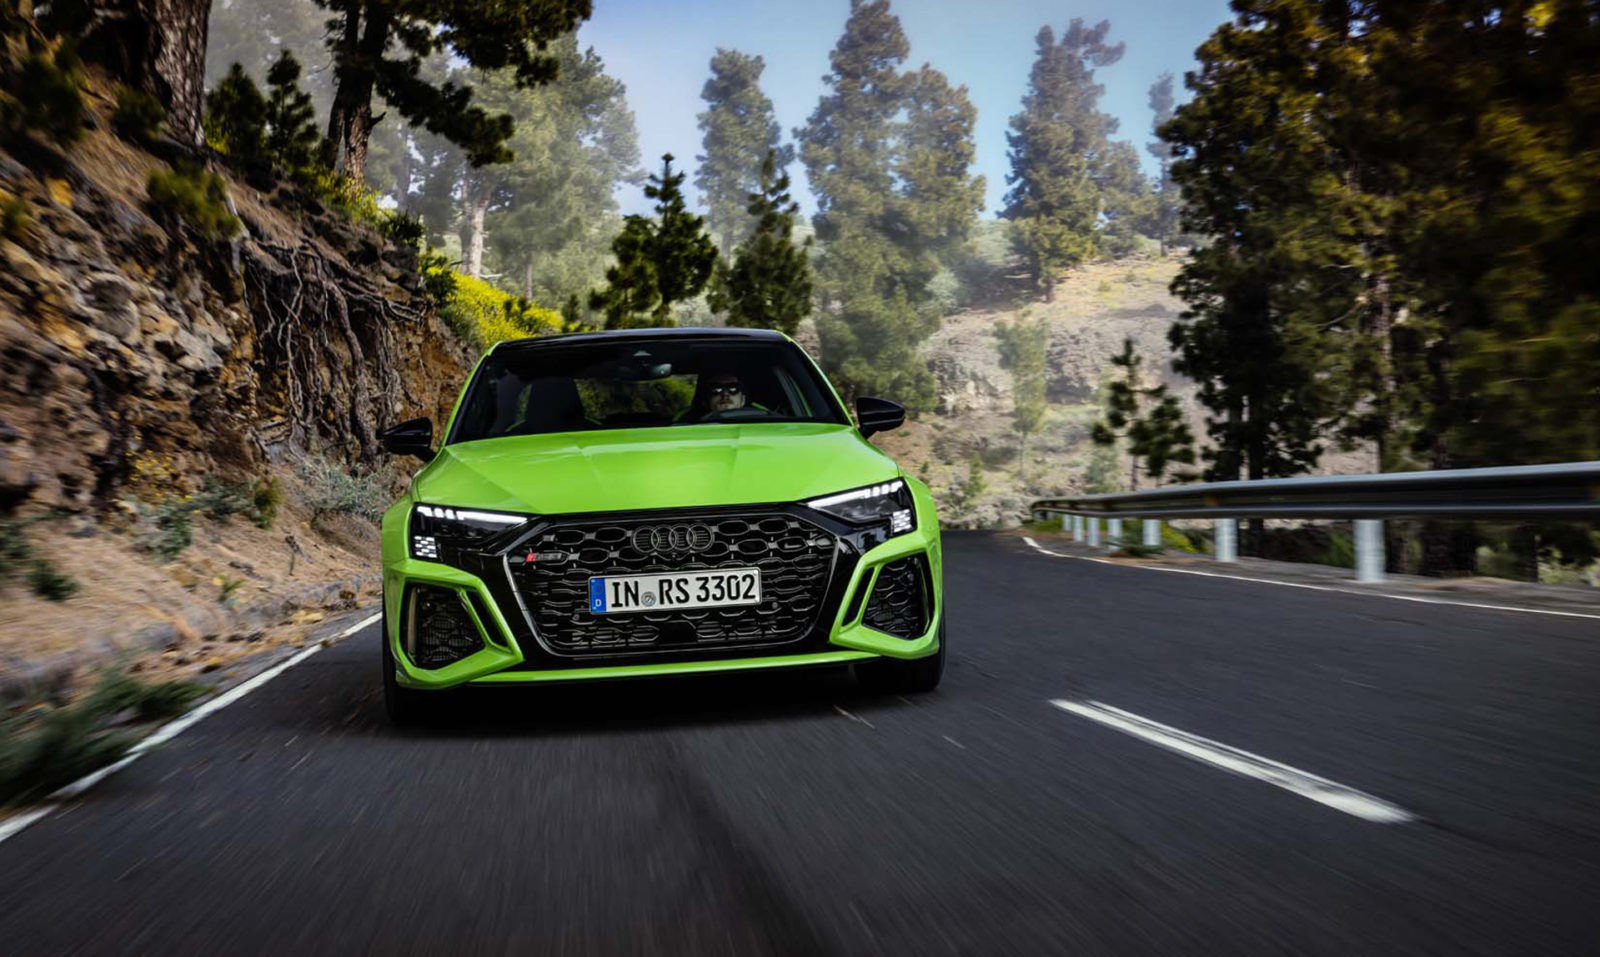 preview:-2022-audi-rs-3-ramps-up-the-turbo-5-power-and-track-capability